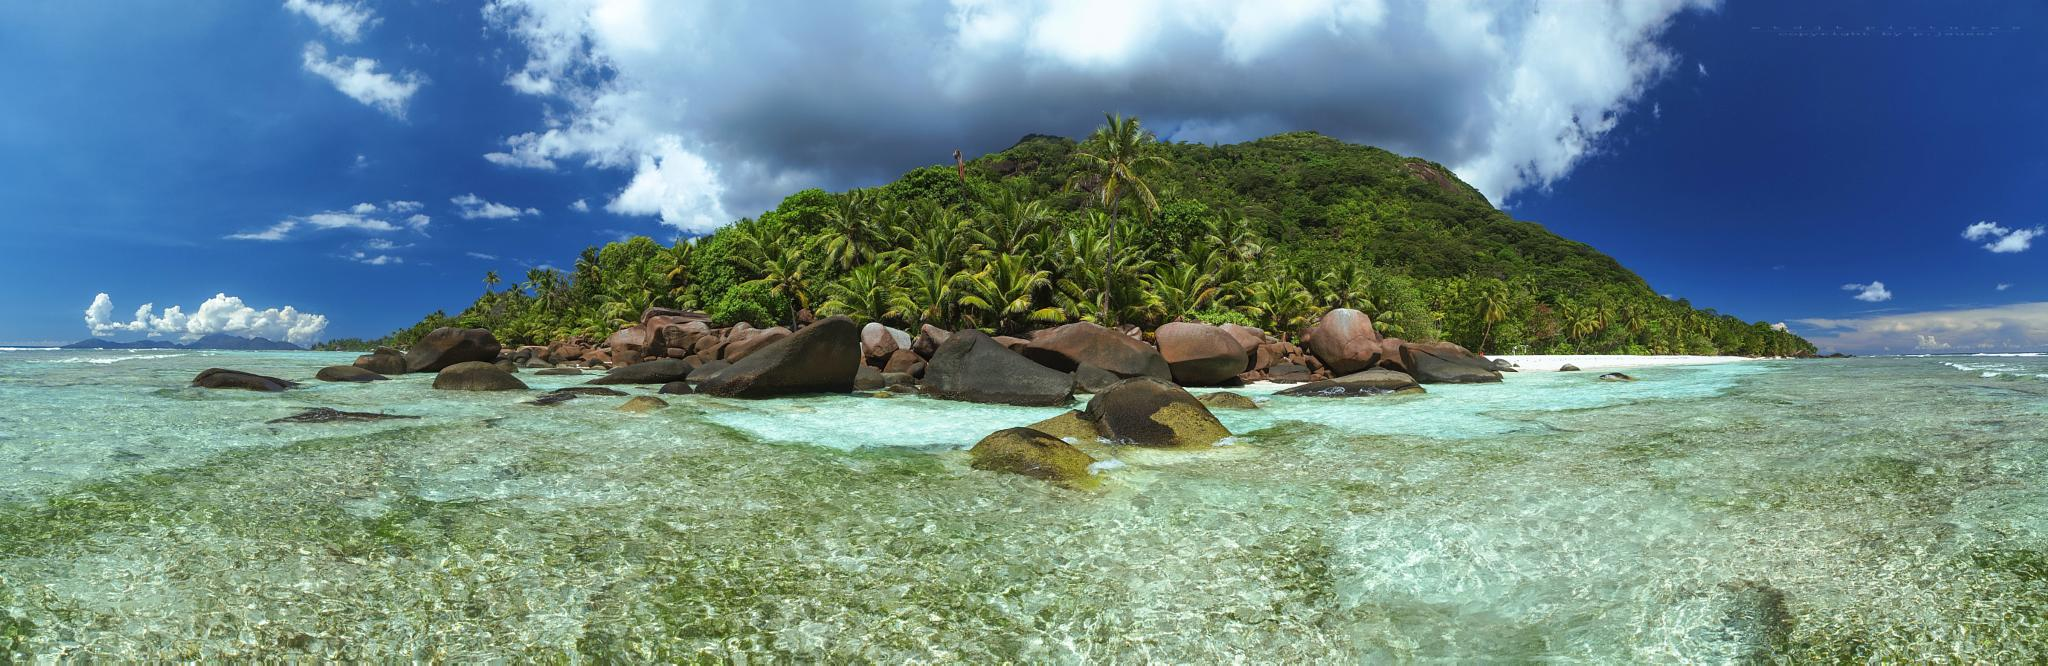 Baie Cipailles - Silhouette Island - Seychelles 2015 by etdjtpictures